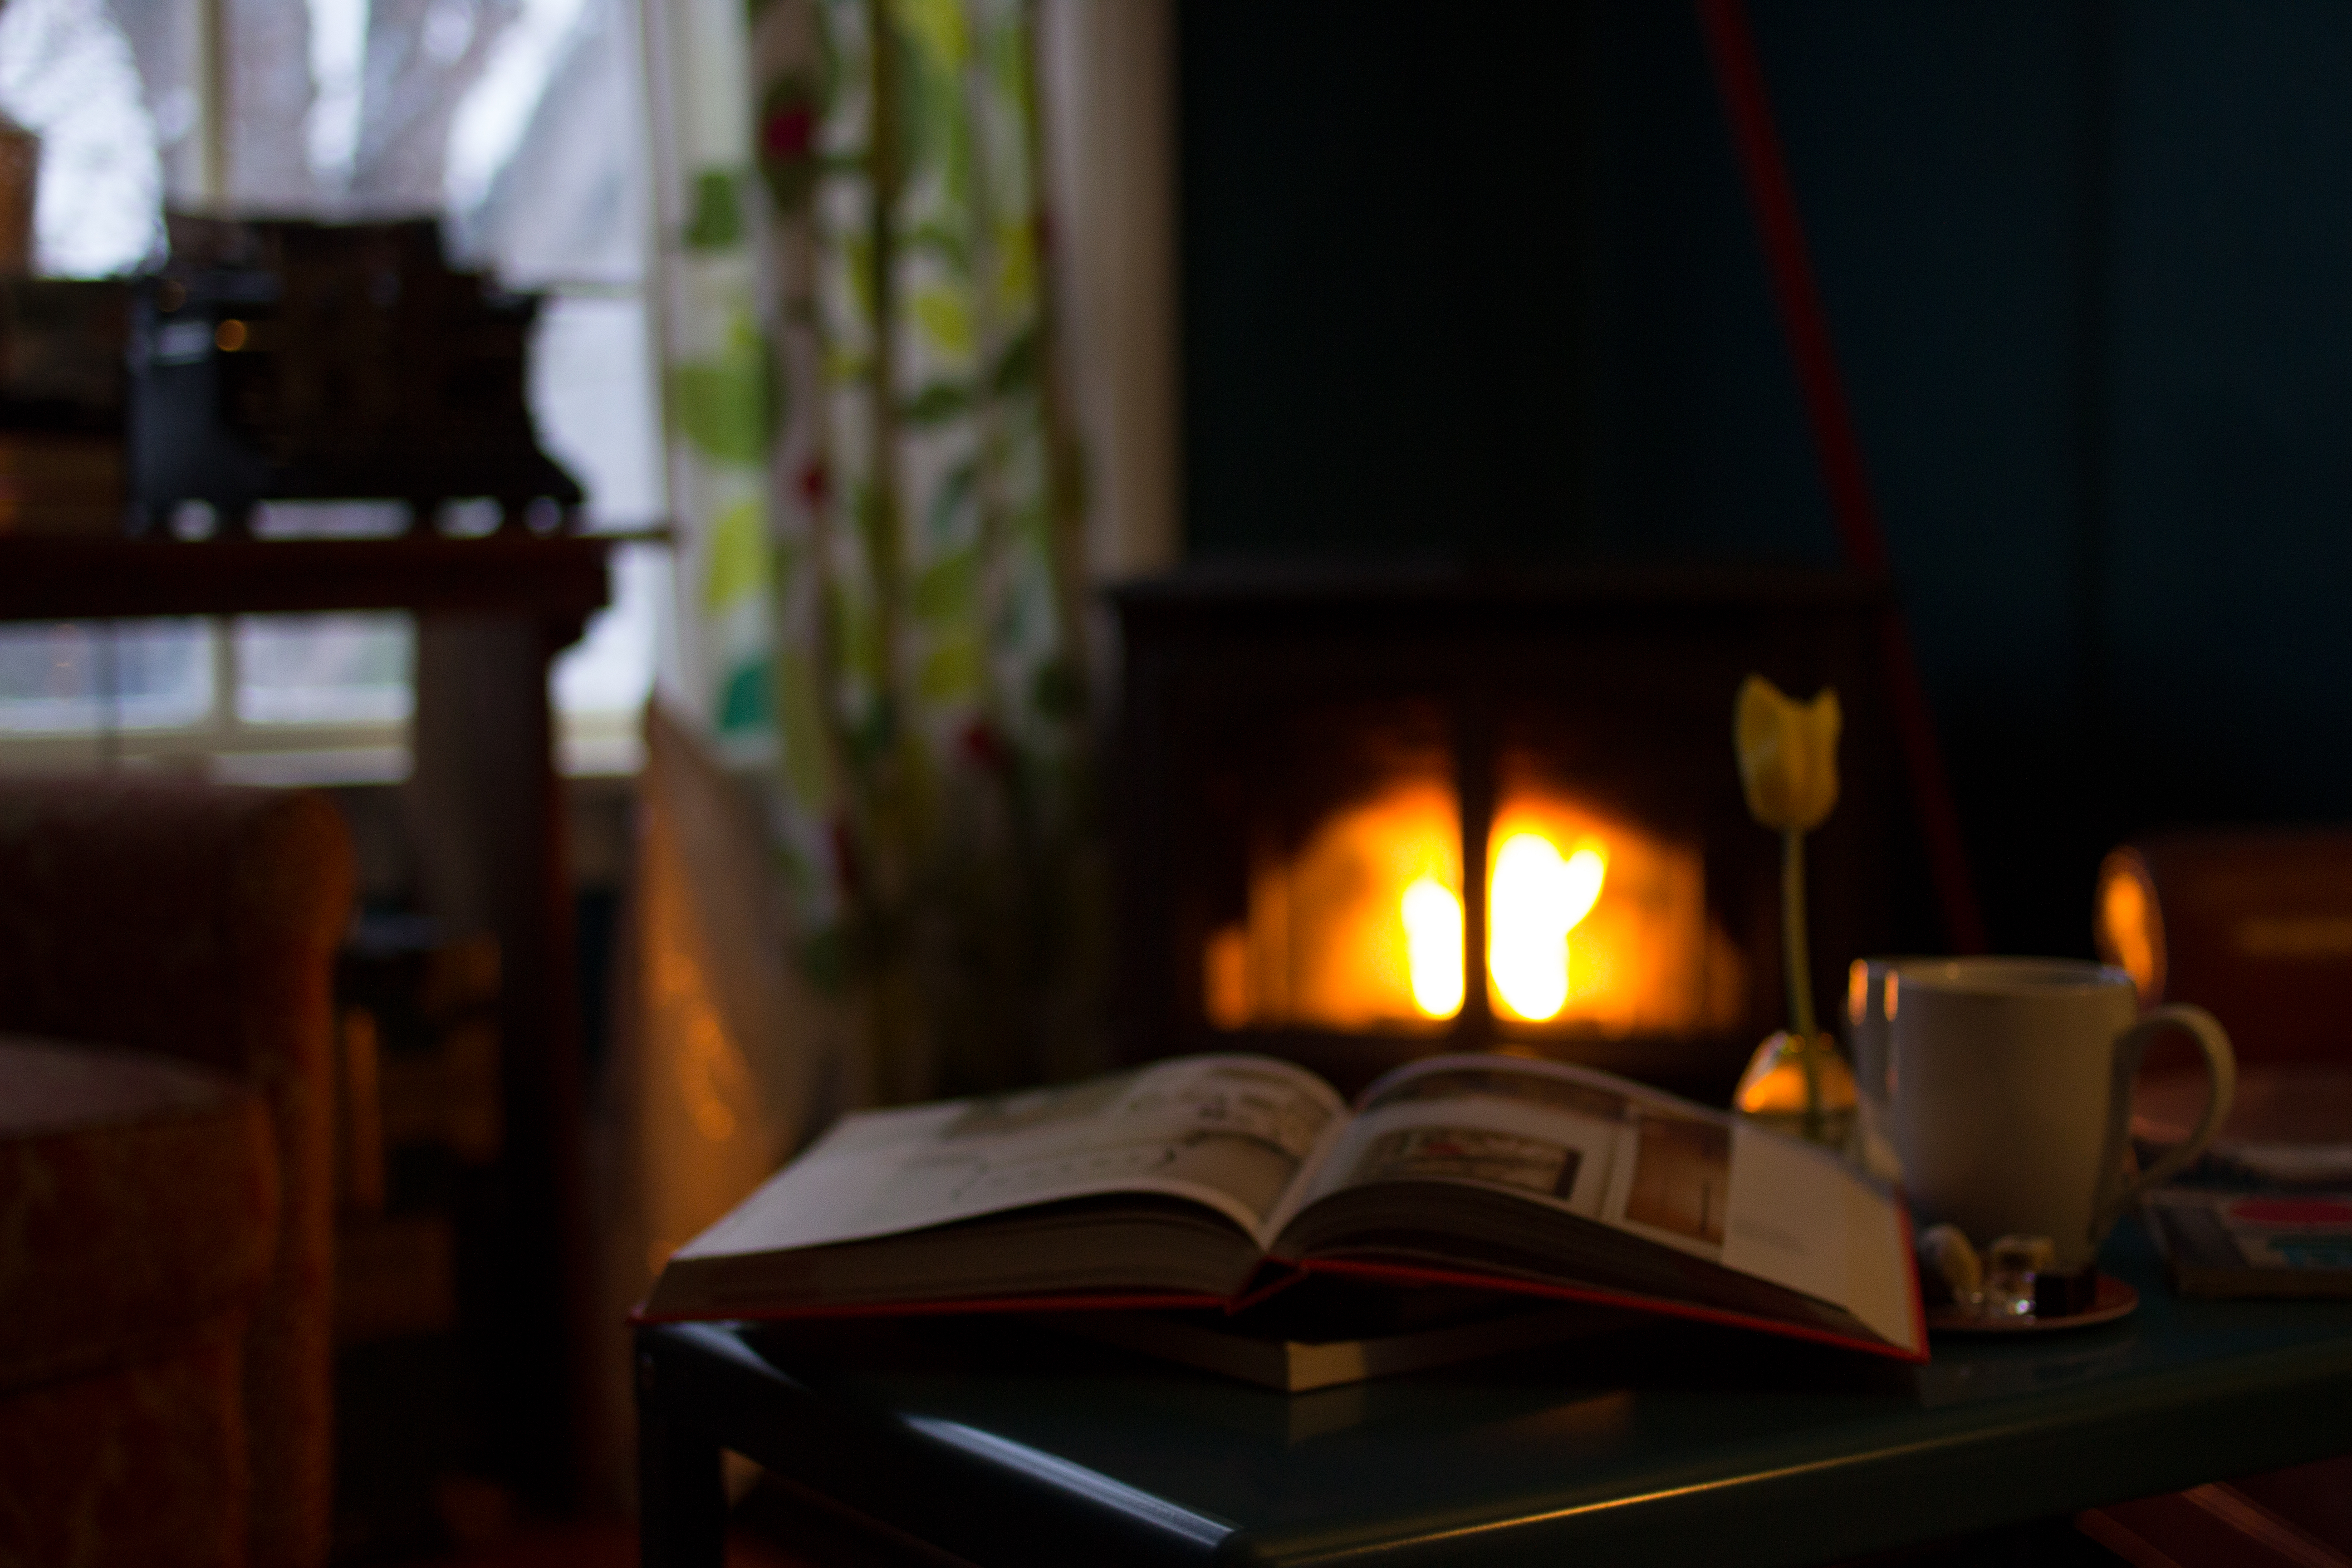 finding hygge